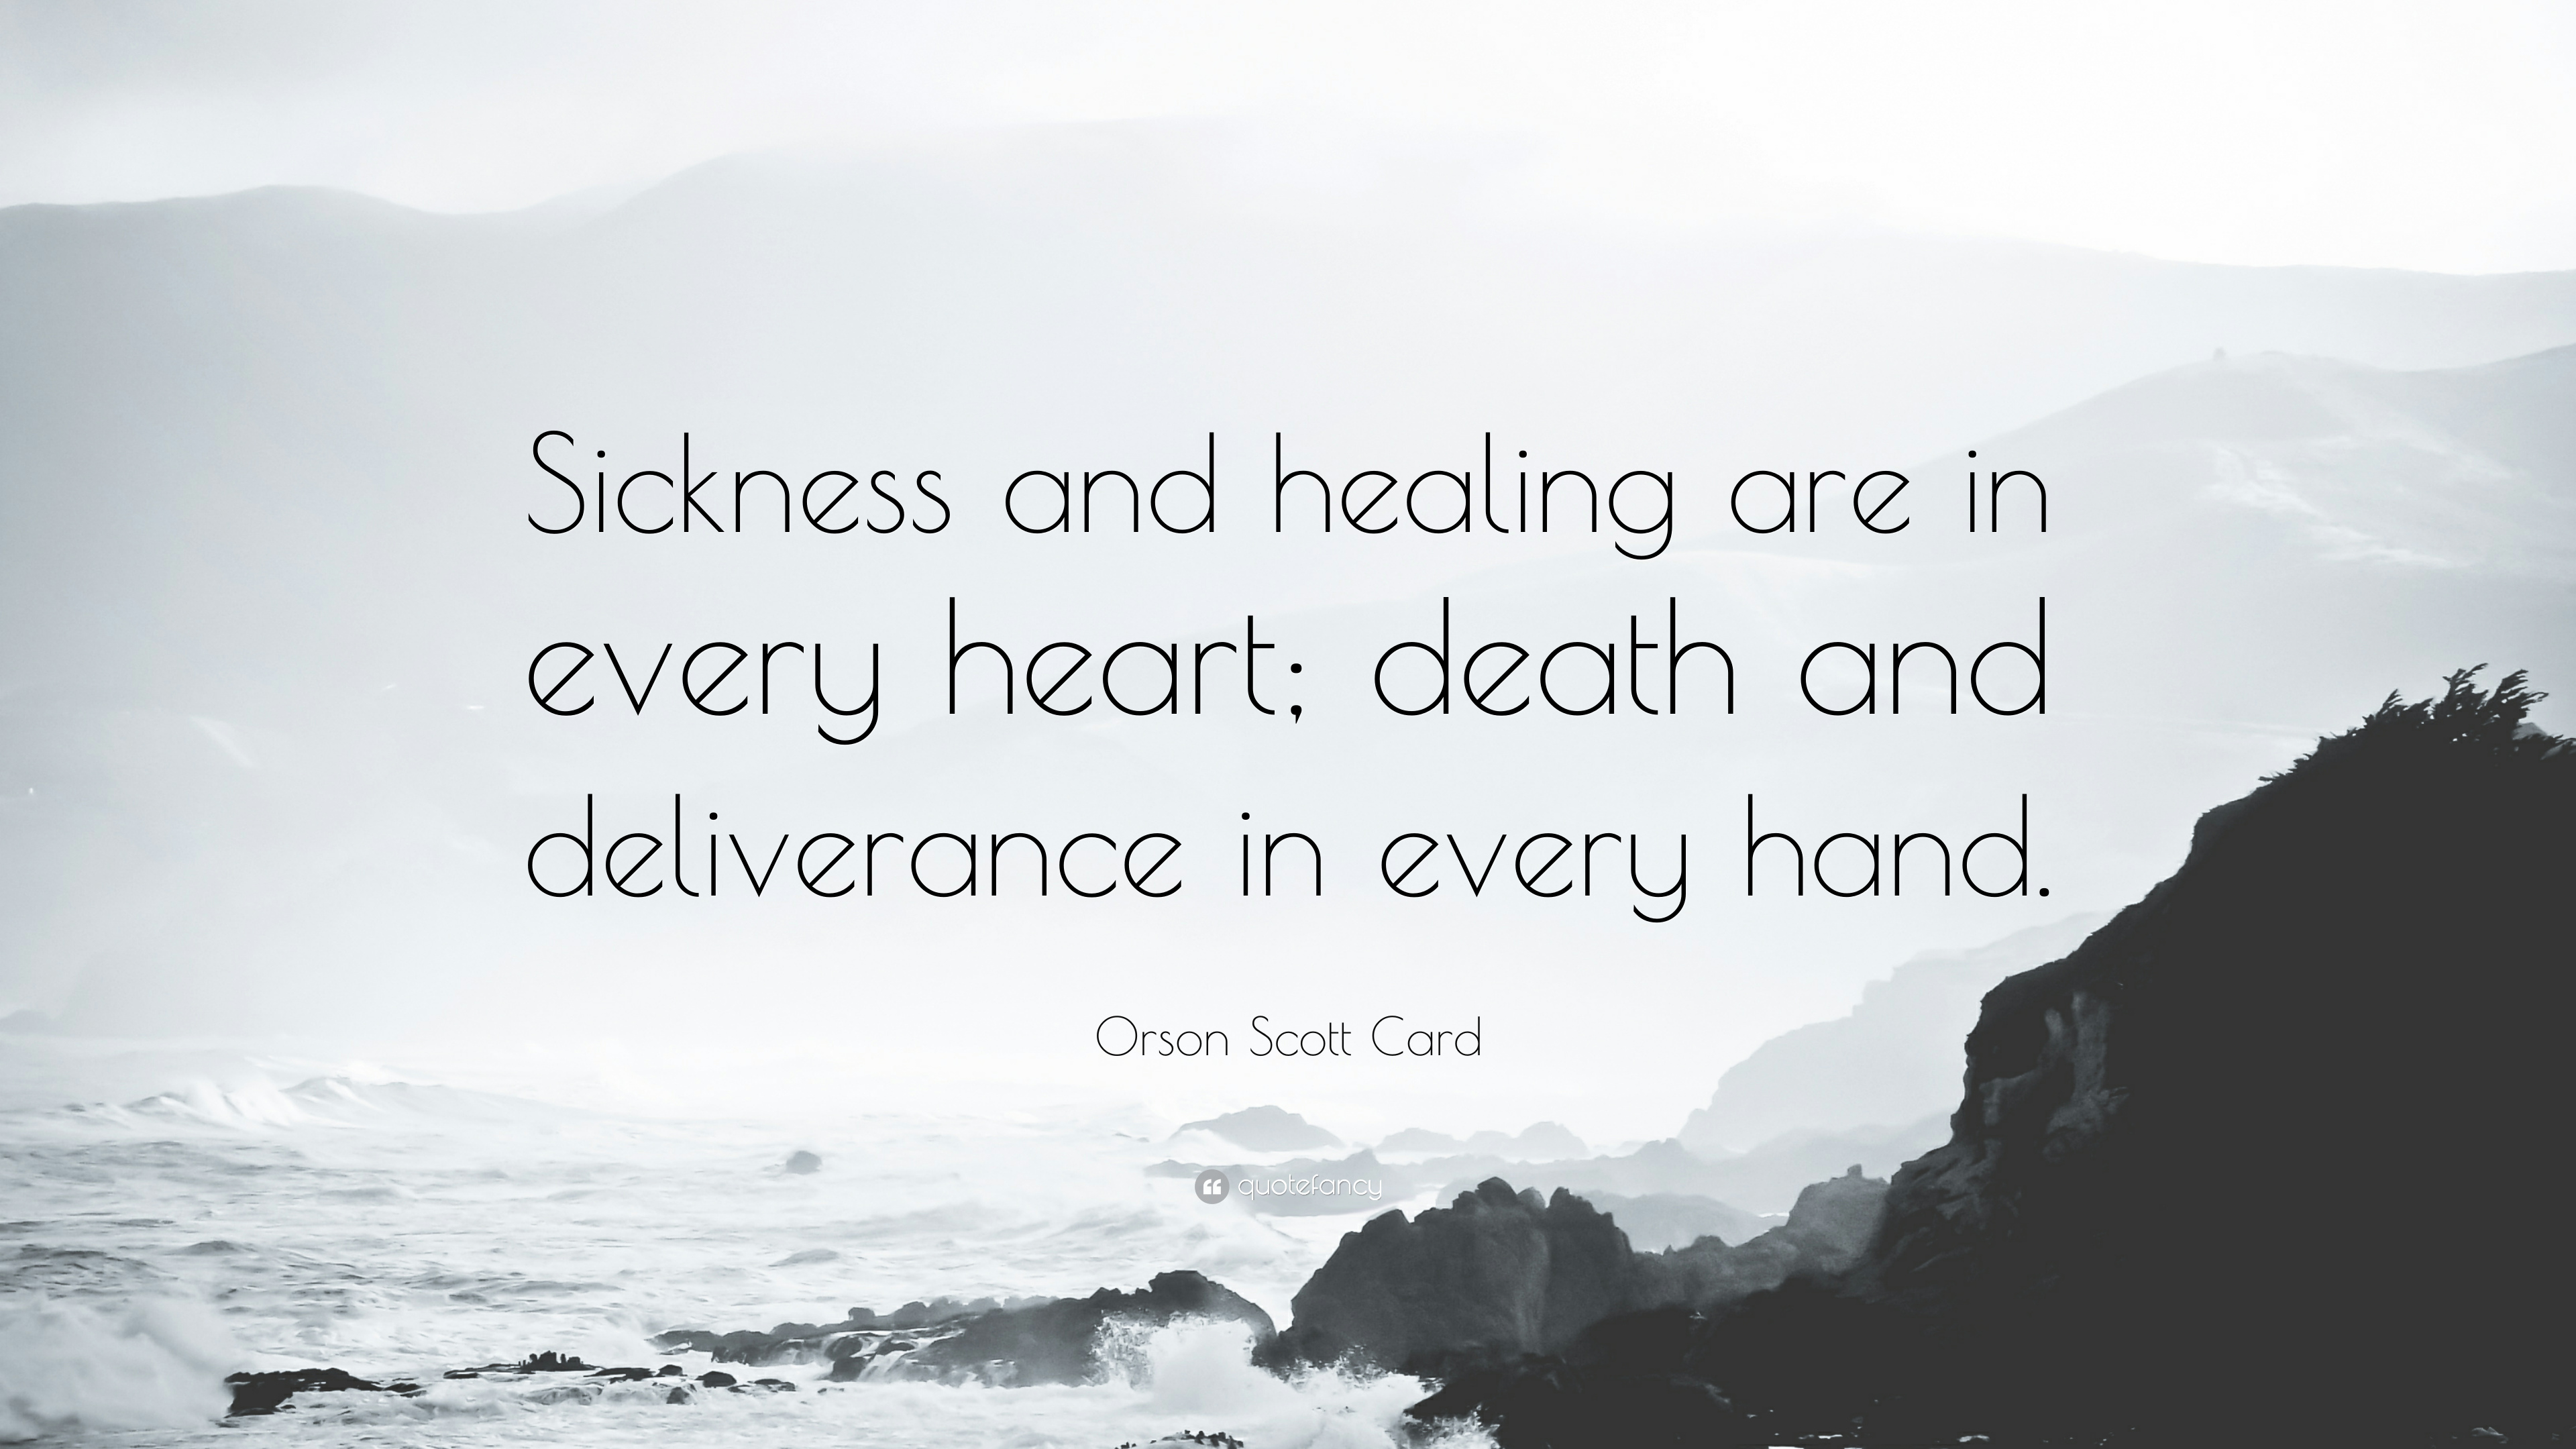 Merveilleux Orson Scott Card Quote: U201cSickness And Healing Are In Every Heart; Death And